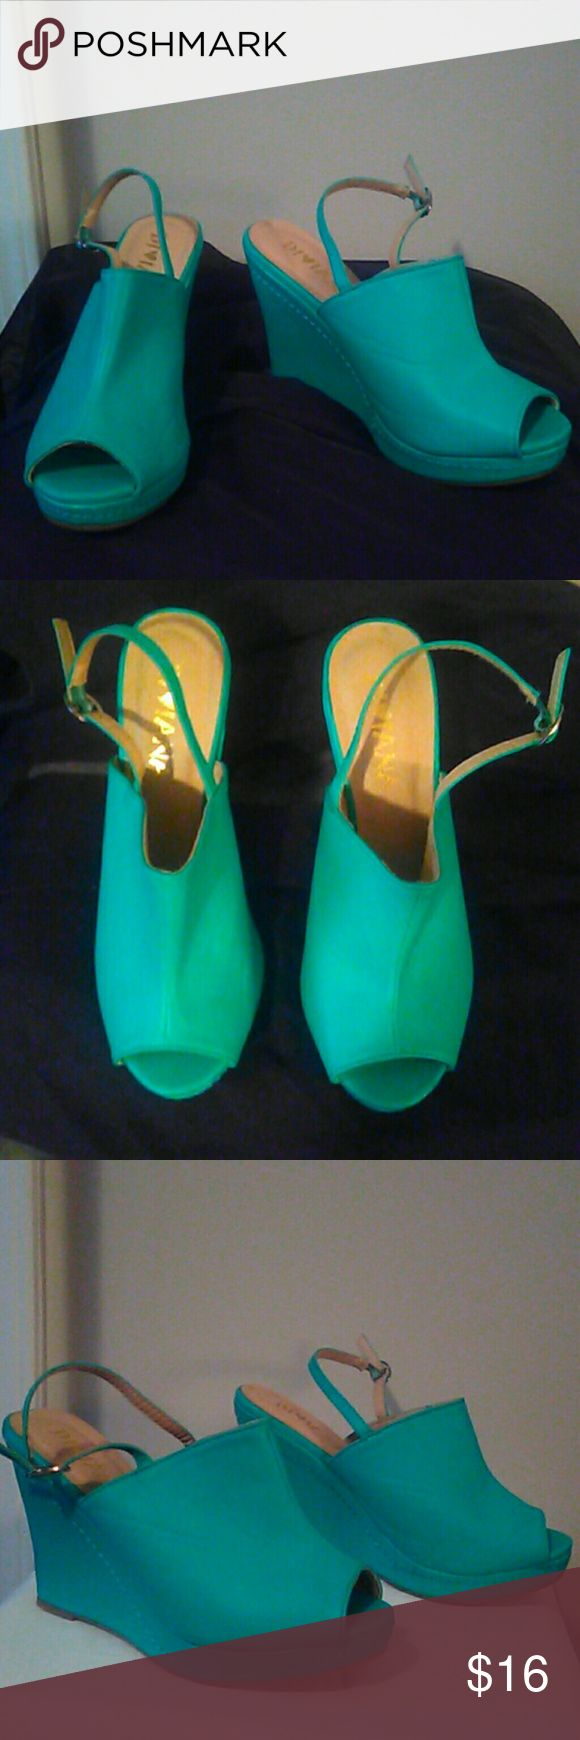 Teal wedges! Teal wedges in excellent condition. Brand new. Never worn. No box diviana Shoes Wedges